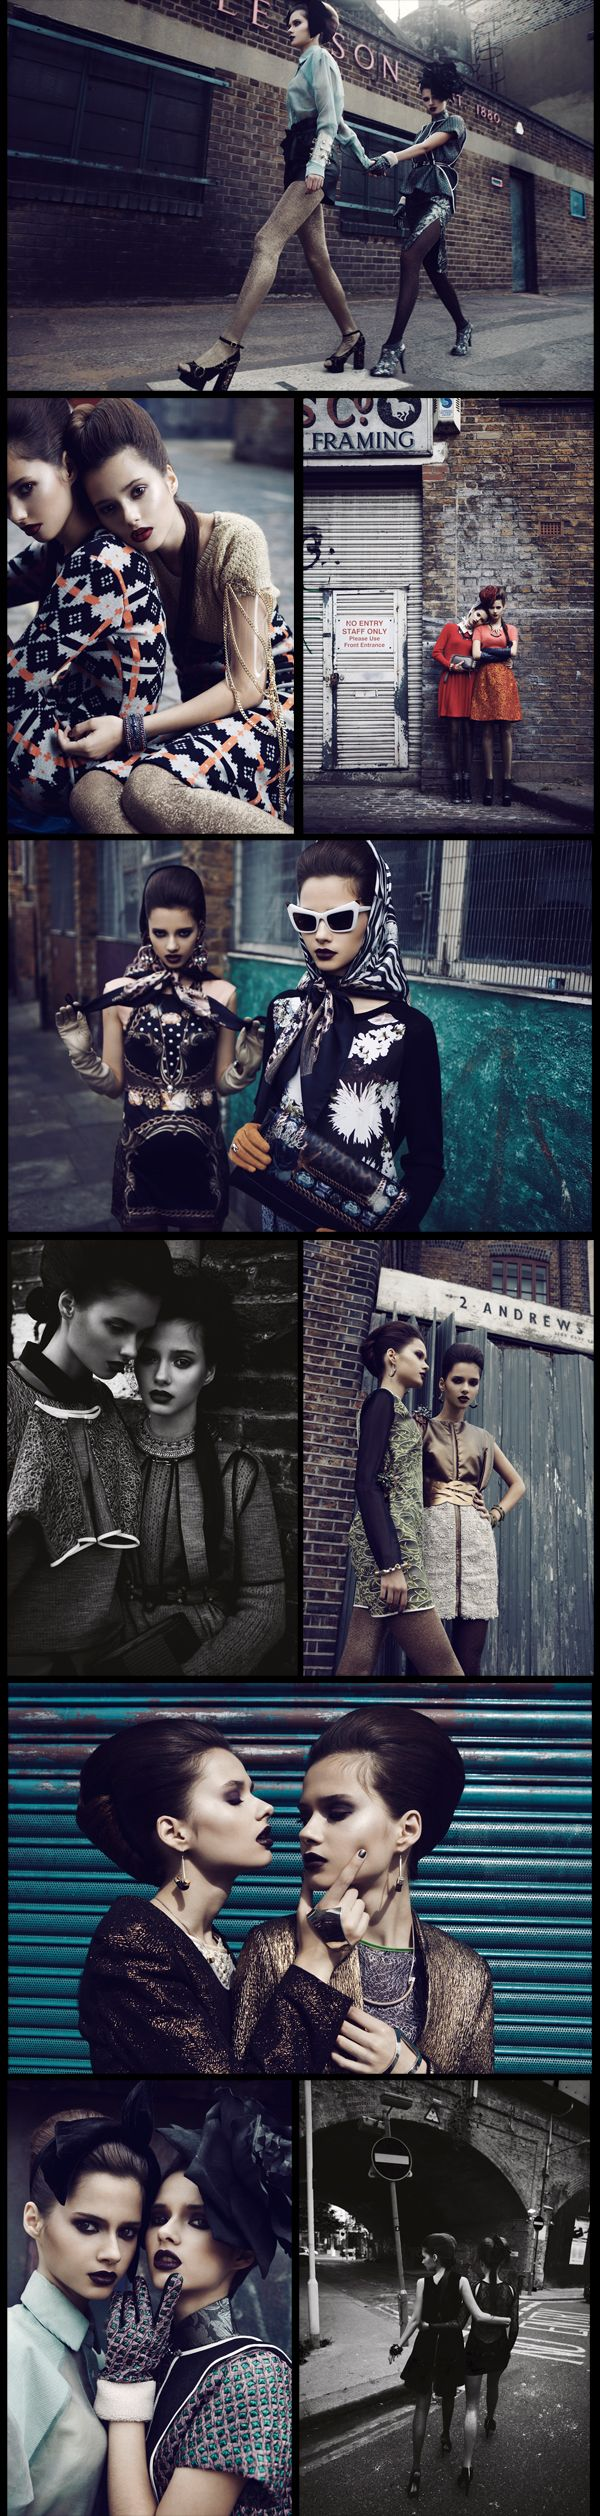 Urban Photo Shoot The 25 Best Urban Fashion Photography Ideas On Pinterest